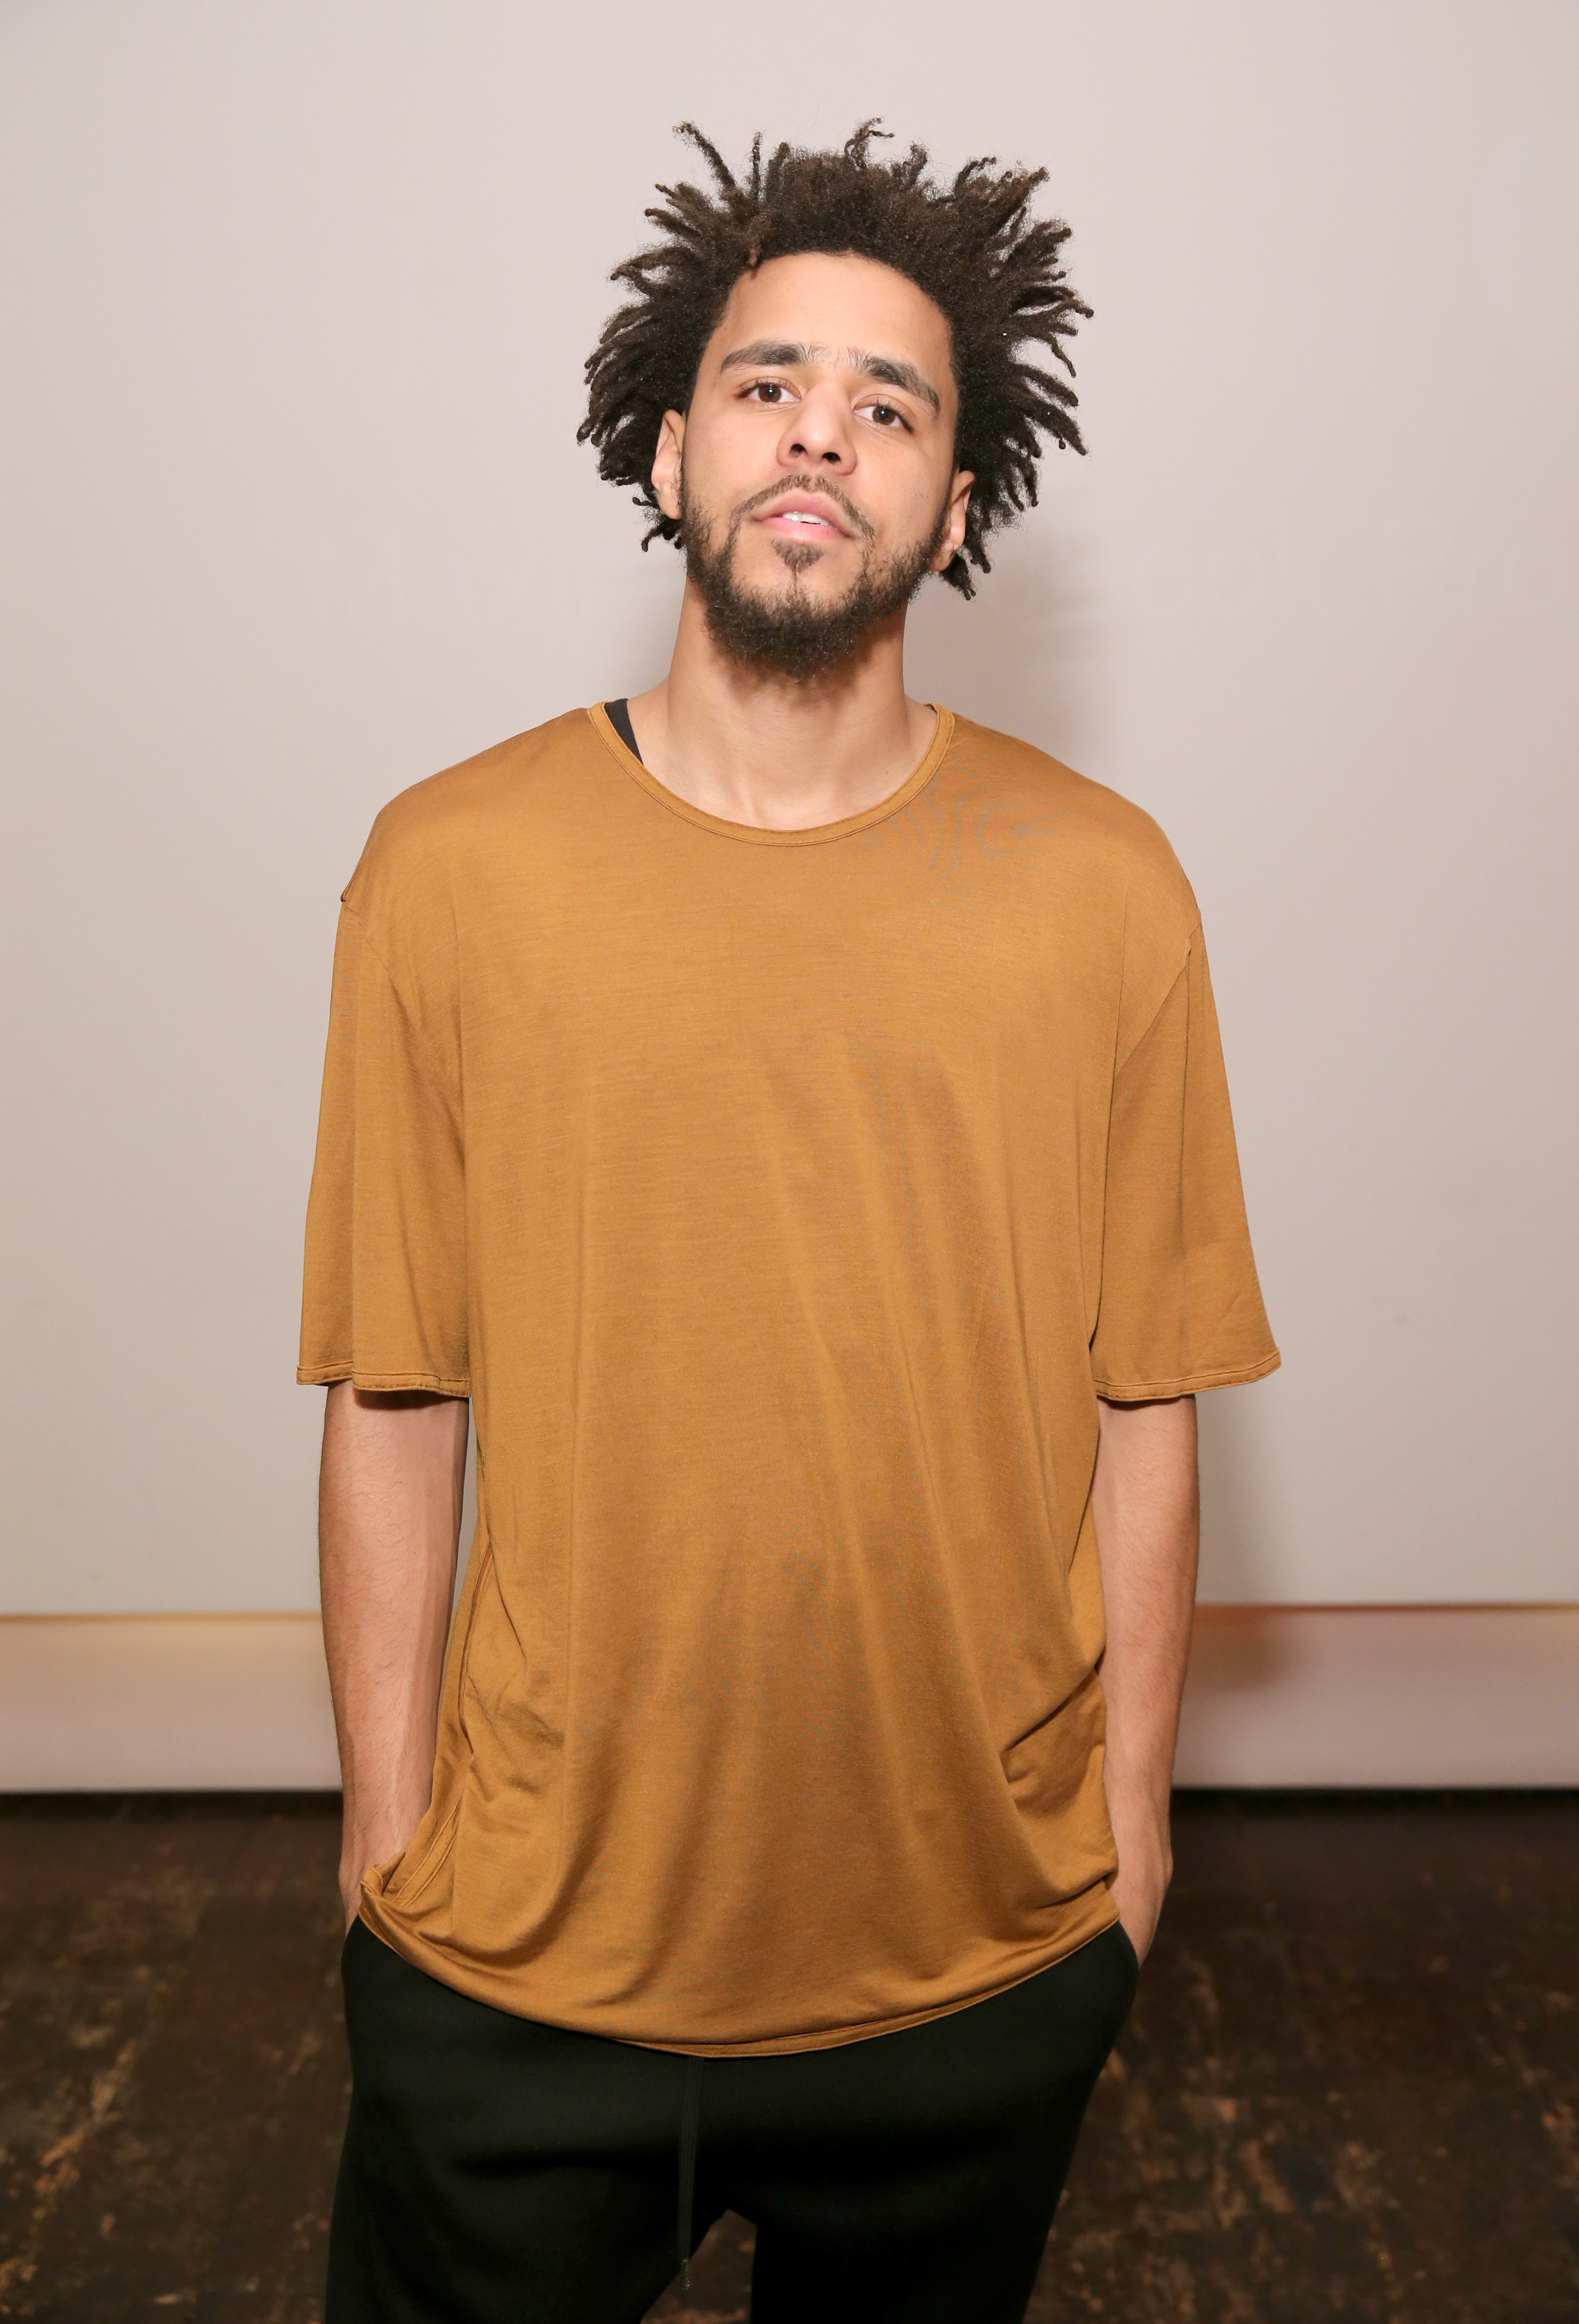 Did J Cole Melissa Heholt Have A Baby Shes Mine From 4 Your